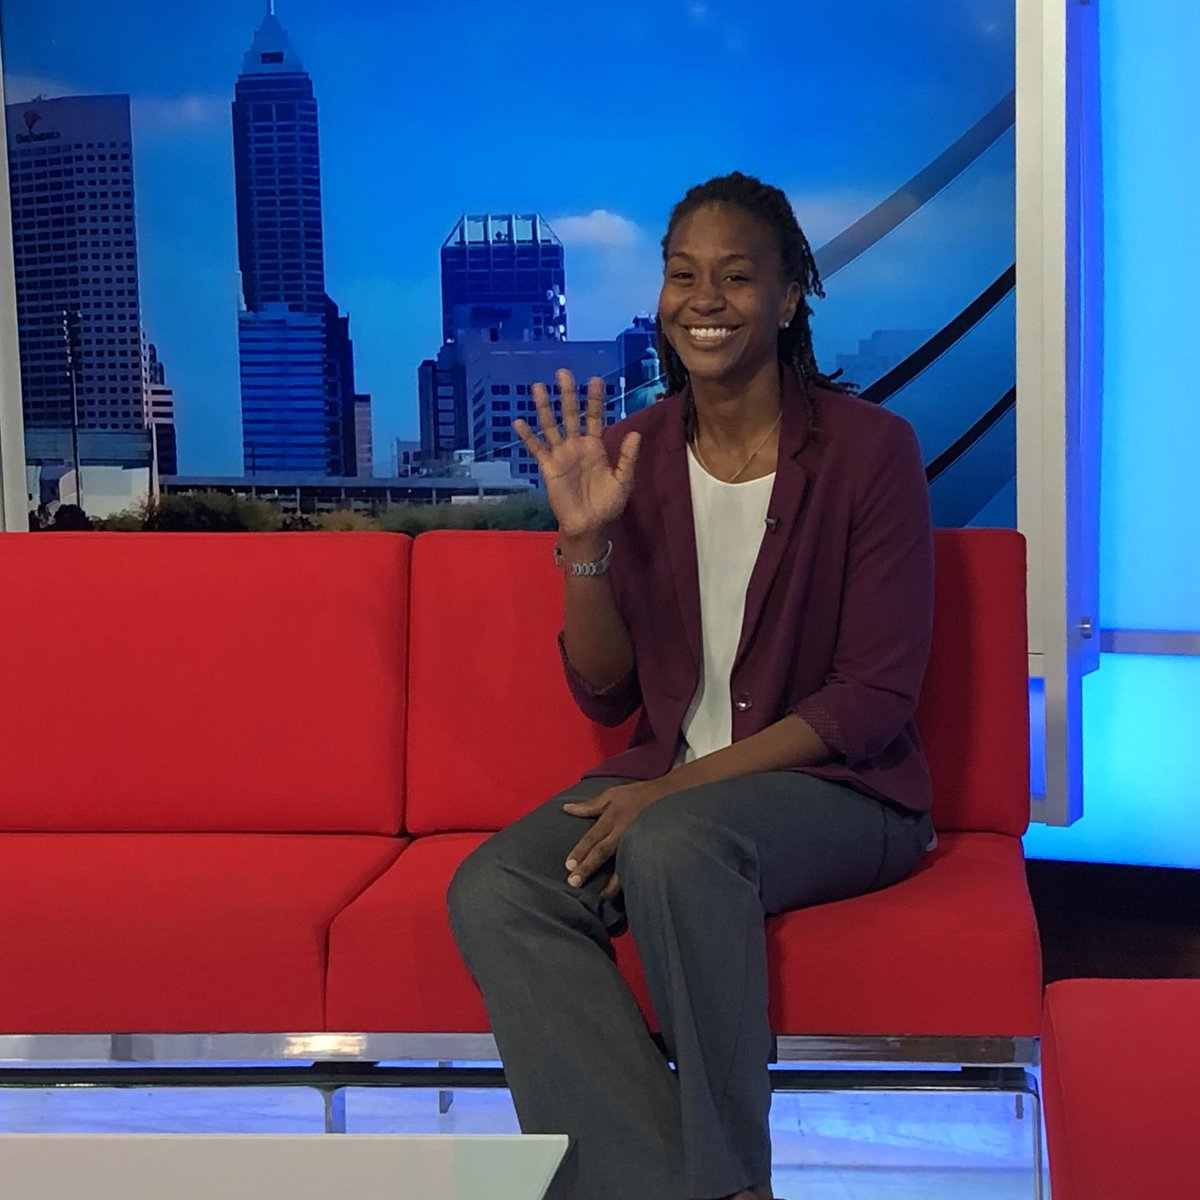 On deck for next segment at @WTHRcom Noon News ... @Catchin24 talks @IndianaFever news! New coach and new Fieldhouse in store for #Fever in 2020! Up next w @AlyssaRaymond! #Fever20 https://t.co/fGN5RyoU8f